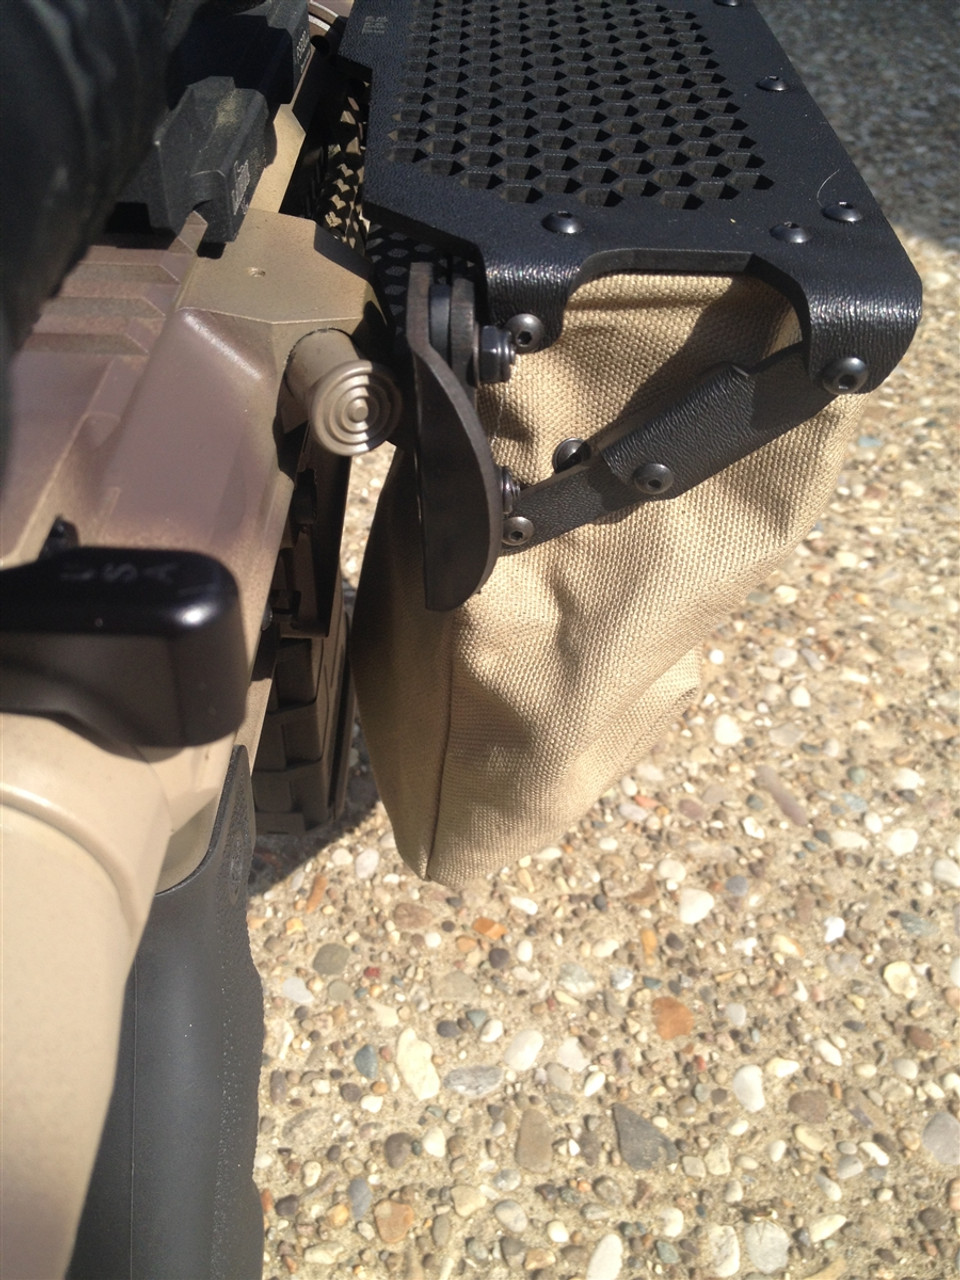 shown on DPMS LR308 with shell deflector/forward assist combination. Khaki/tan fabric.